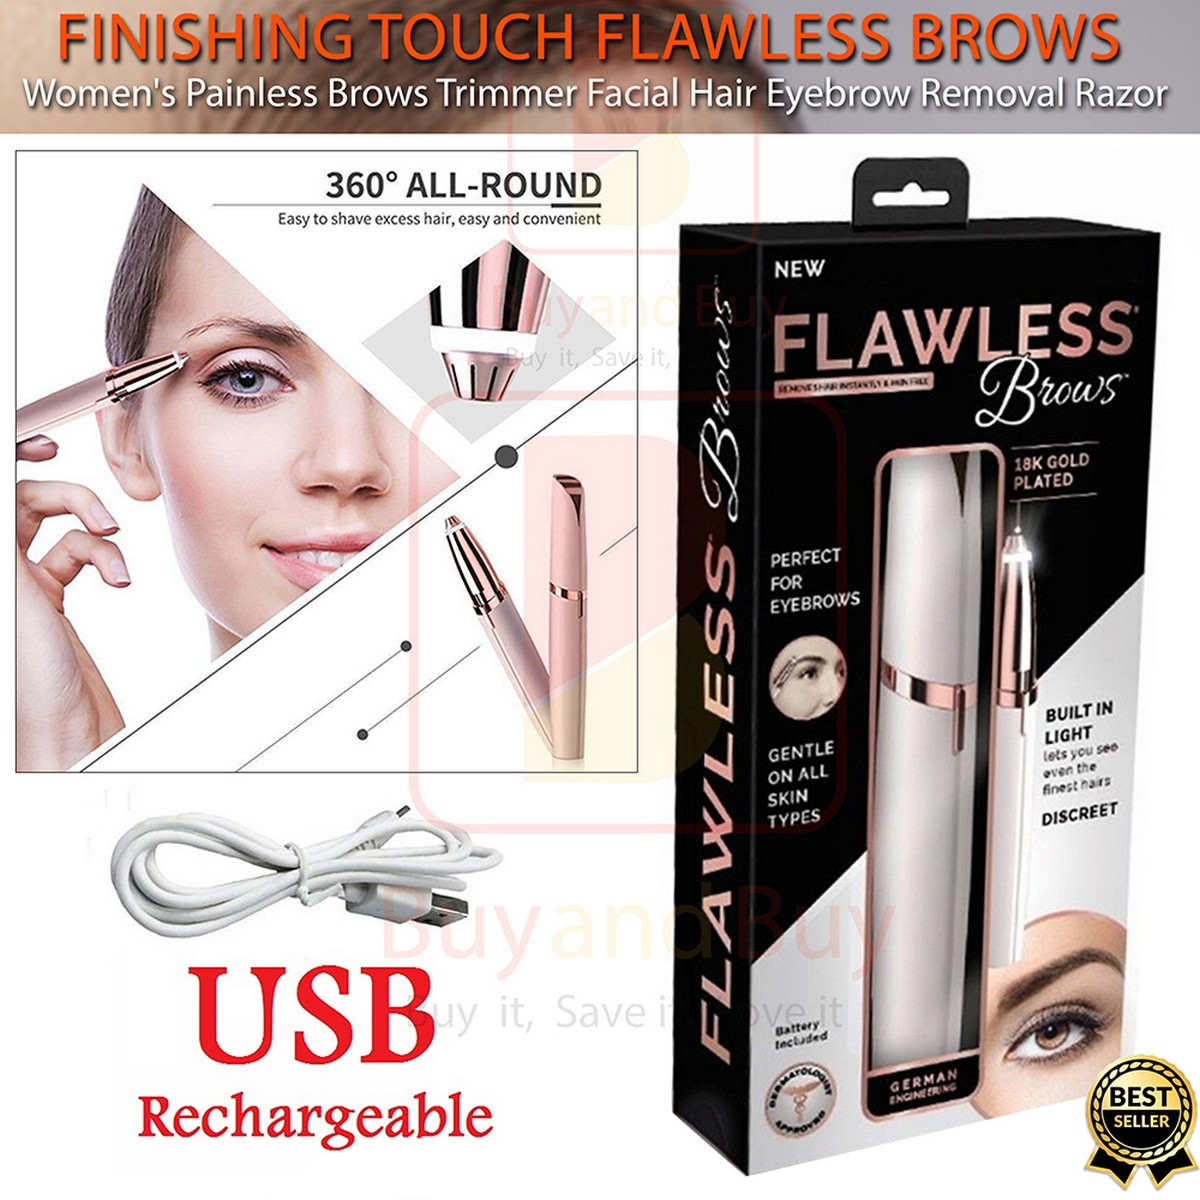 Rechargeable Flawless Eyebrow Hair Remover- Finishing Touch Hair Remover Machine - Original Facial Hair Remover - Rechargeable Eyes Brow And Hair Remover - Electric Trimmer Epilator-Eyebrow Trimmer Pen